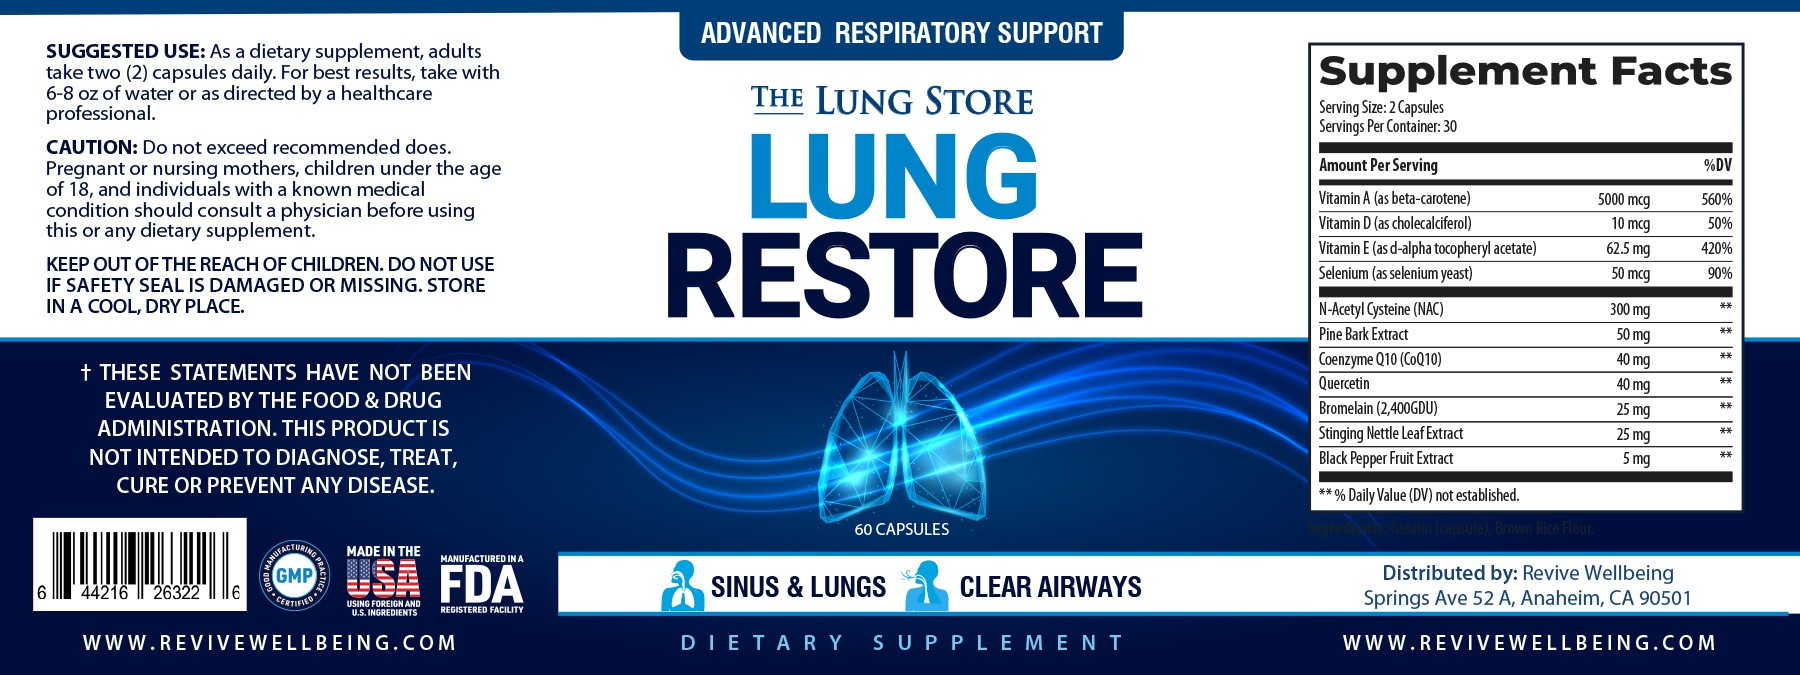 Supplement Label for people with lung issues